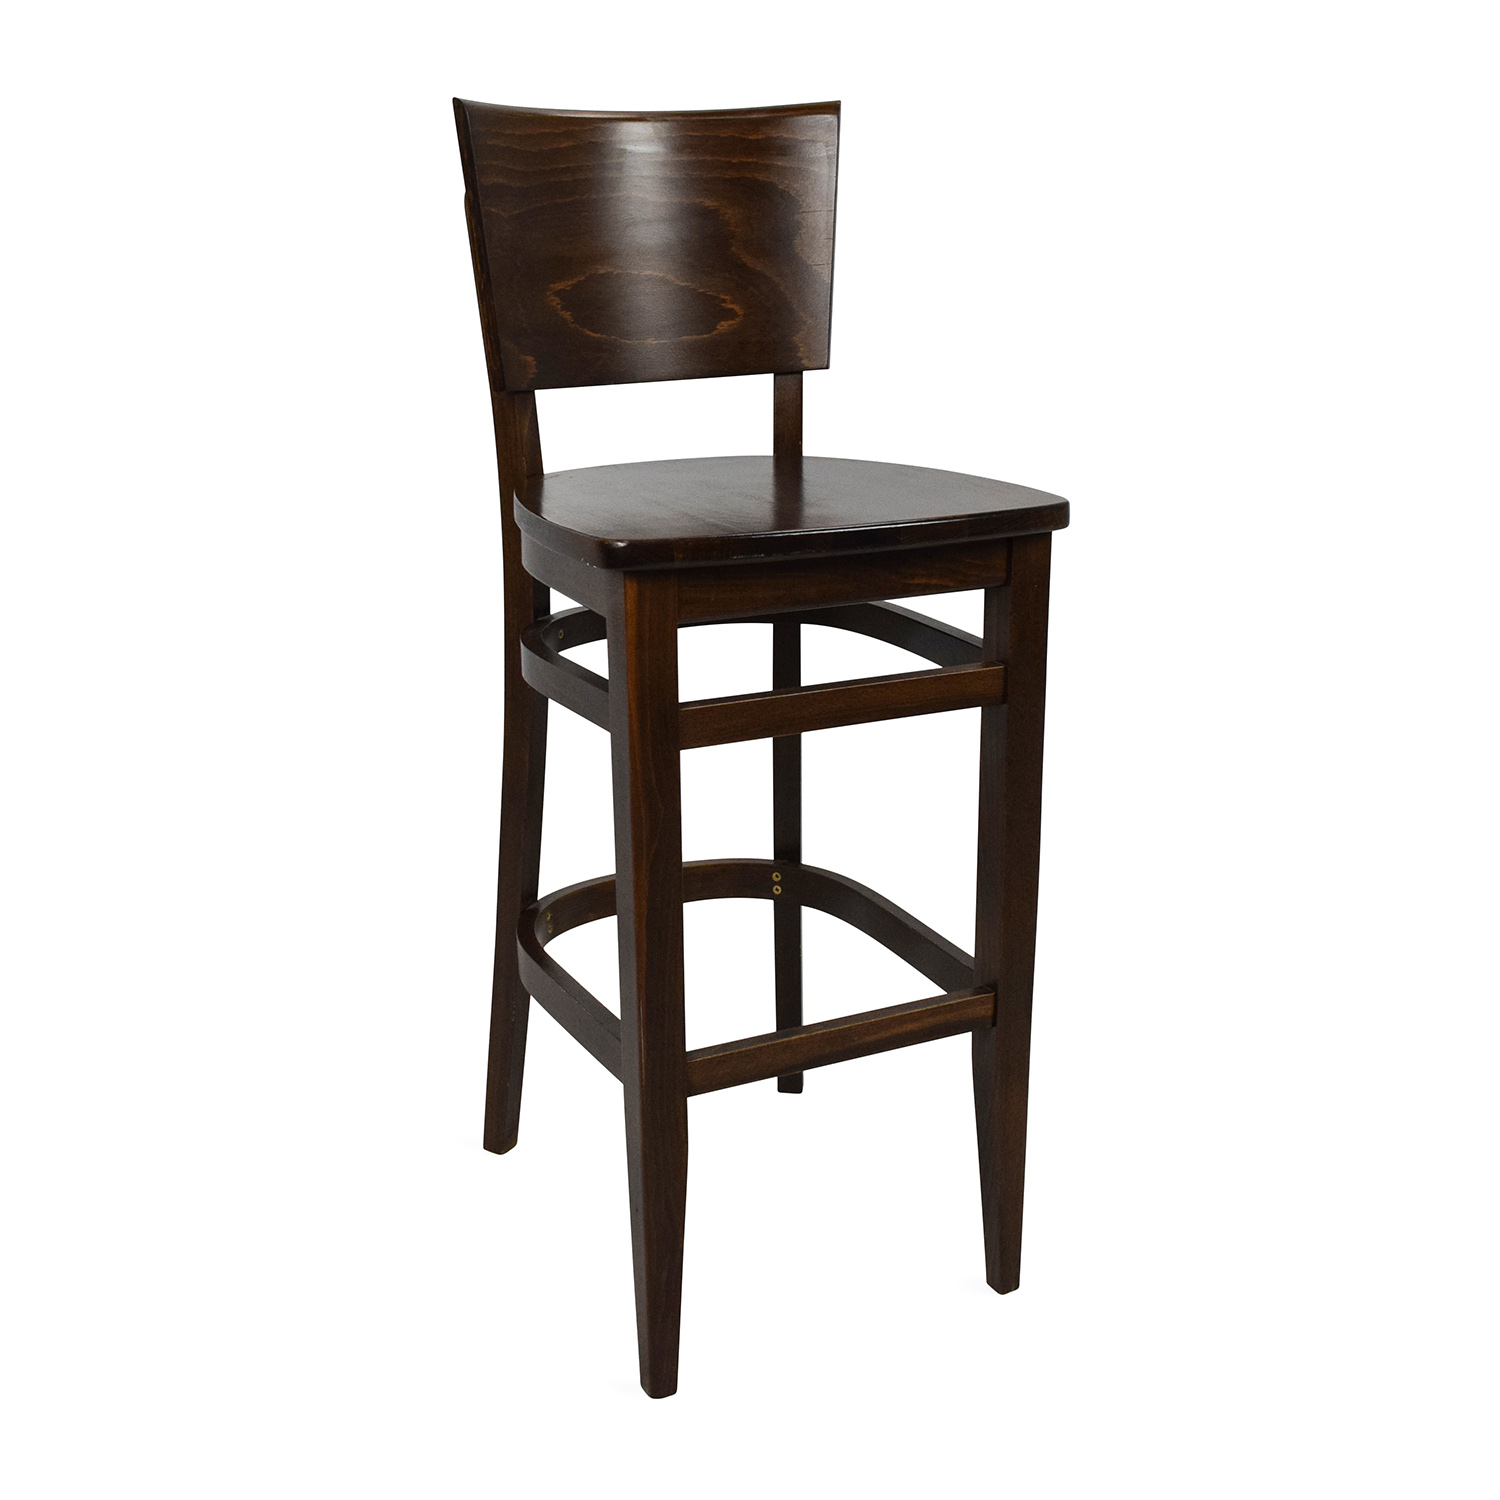 ... Design Within Reach Kyoto Bar Stool Design Within Reach (DWR) ...  sc 1 st  Furnishare & 85% OFF - Design Within Reach (DWR) Design Within Reach Kyoto Bar ... islam-shia.org